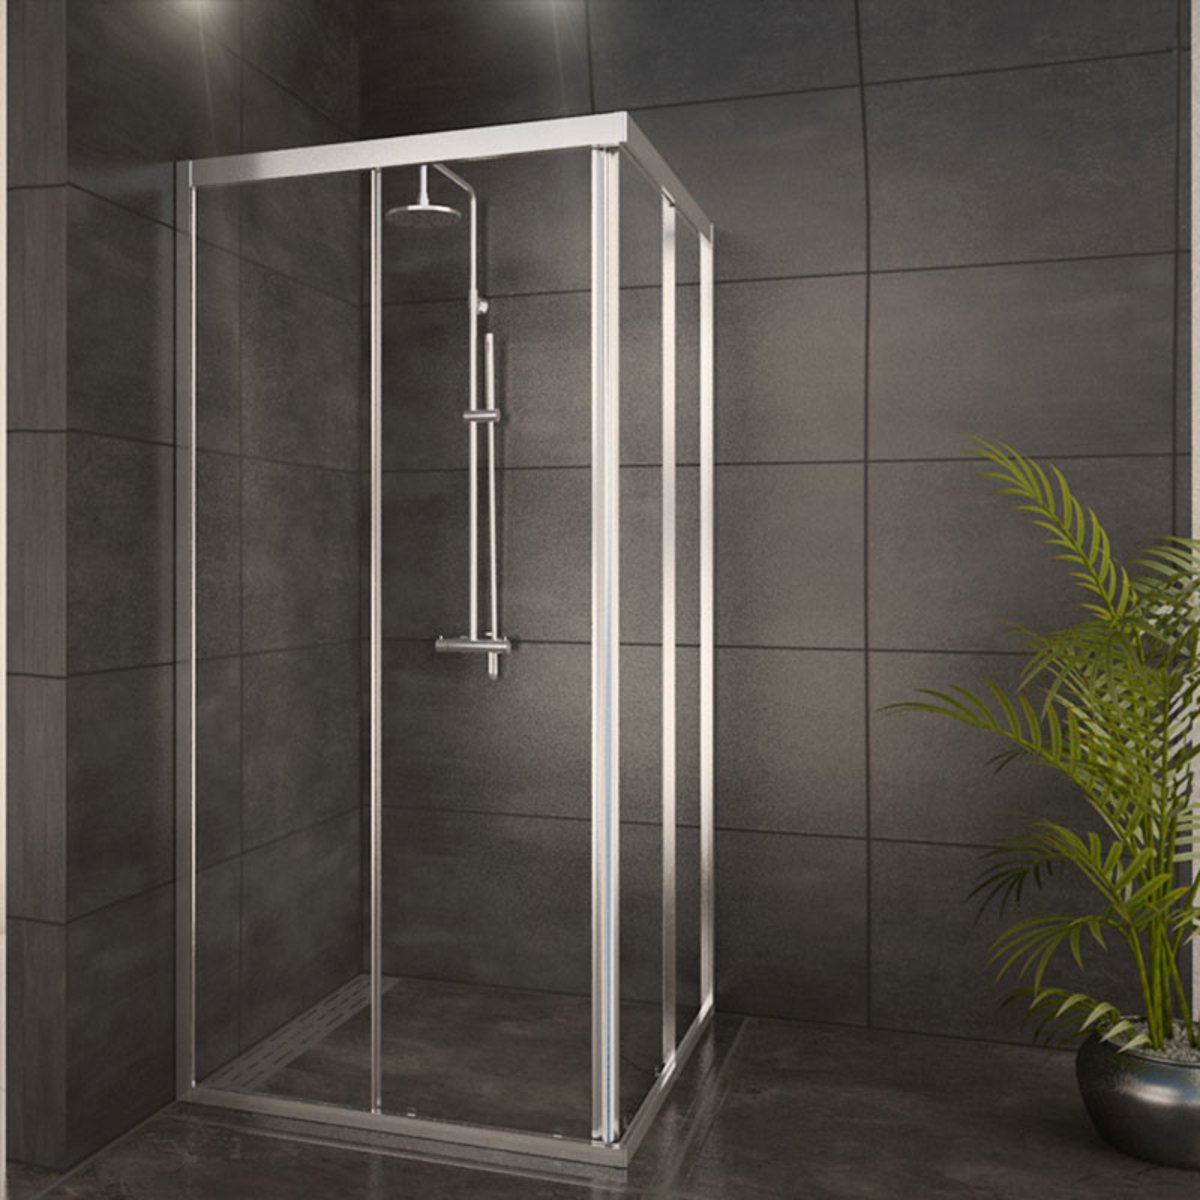 adema glass cabine de douche carr avec 2 portes coulissantes 90x90x185cm profil chrome et vitre. Black Bedroom Furniture Sets. Home Design Ideas